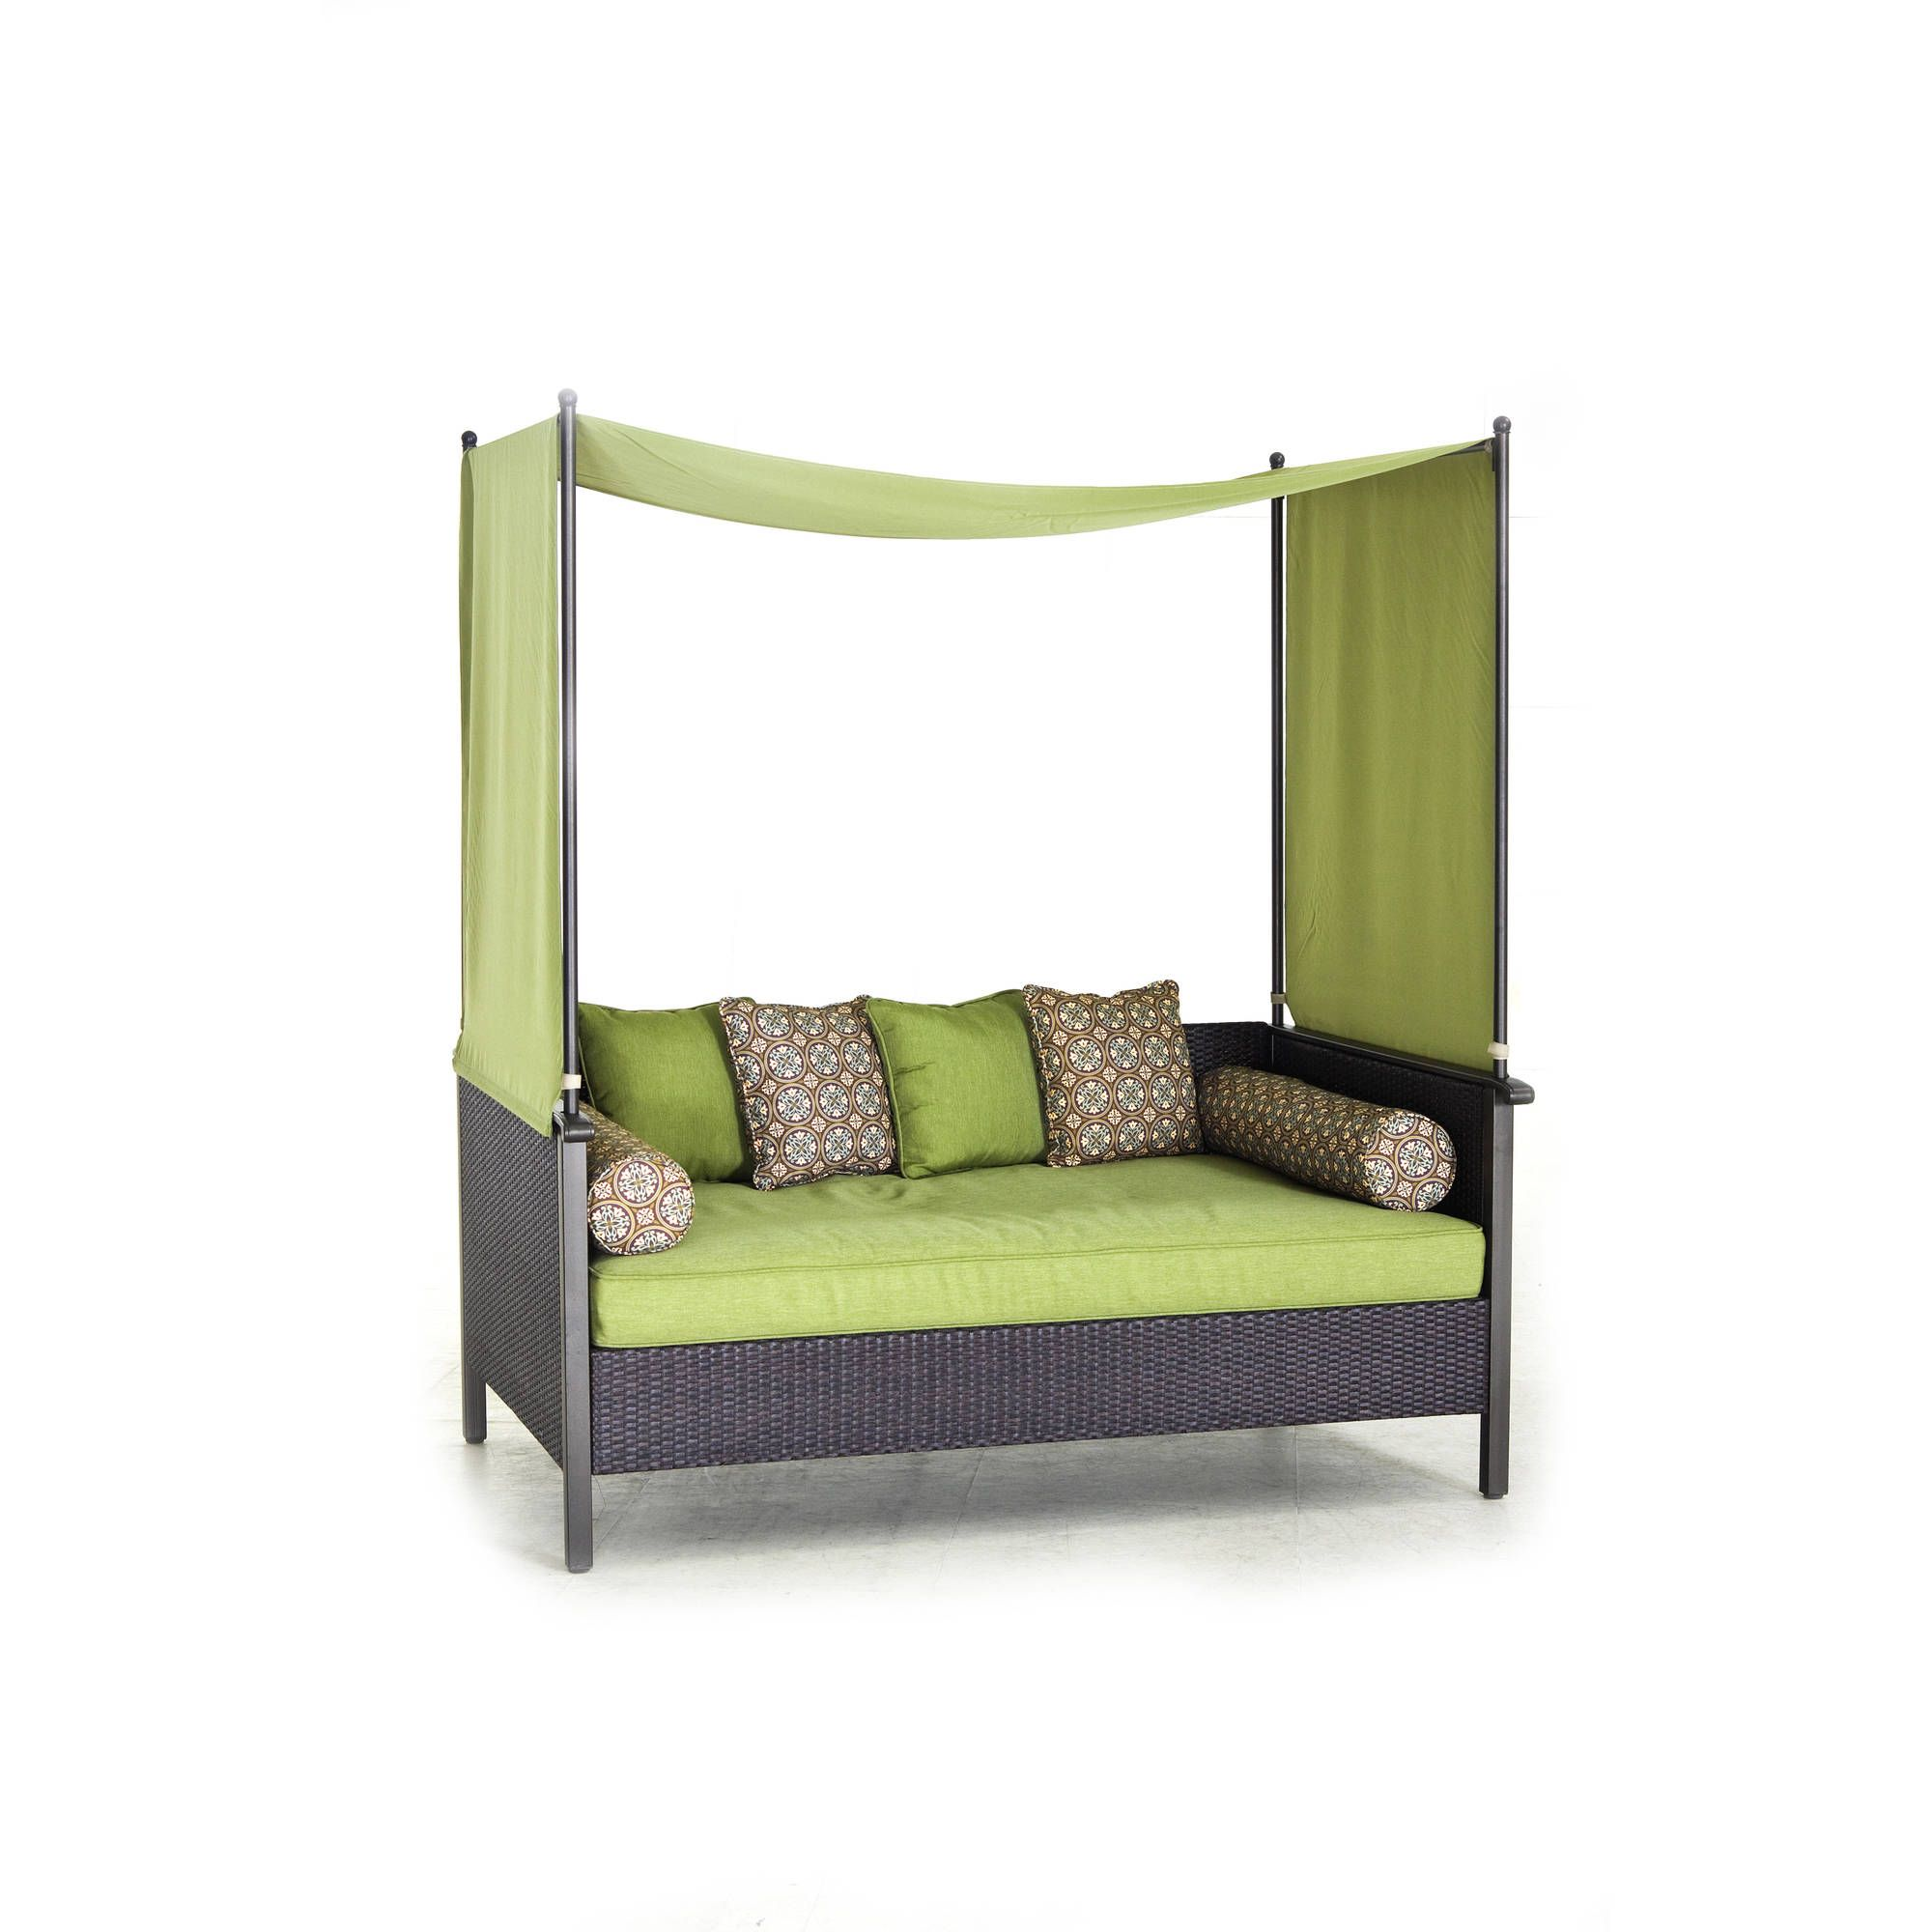 architecture walmart daybed with trundle daybeds ikea quinn metal